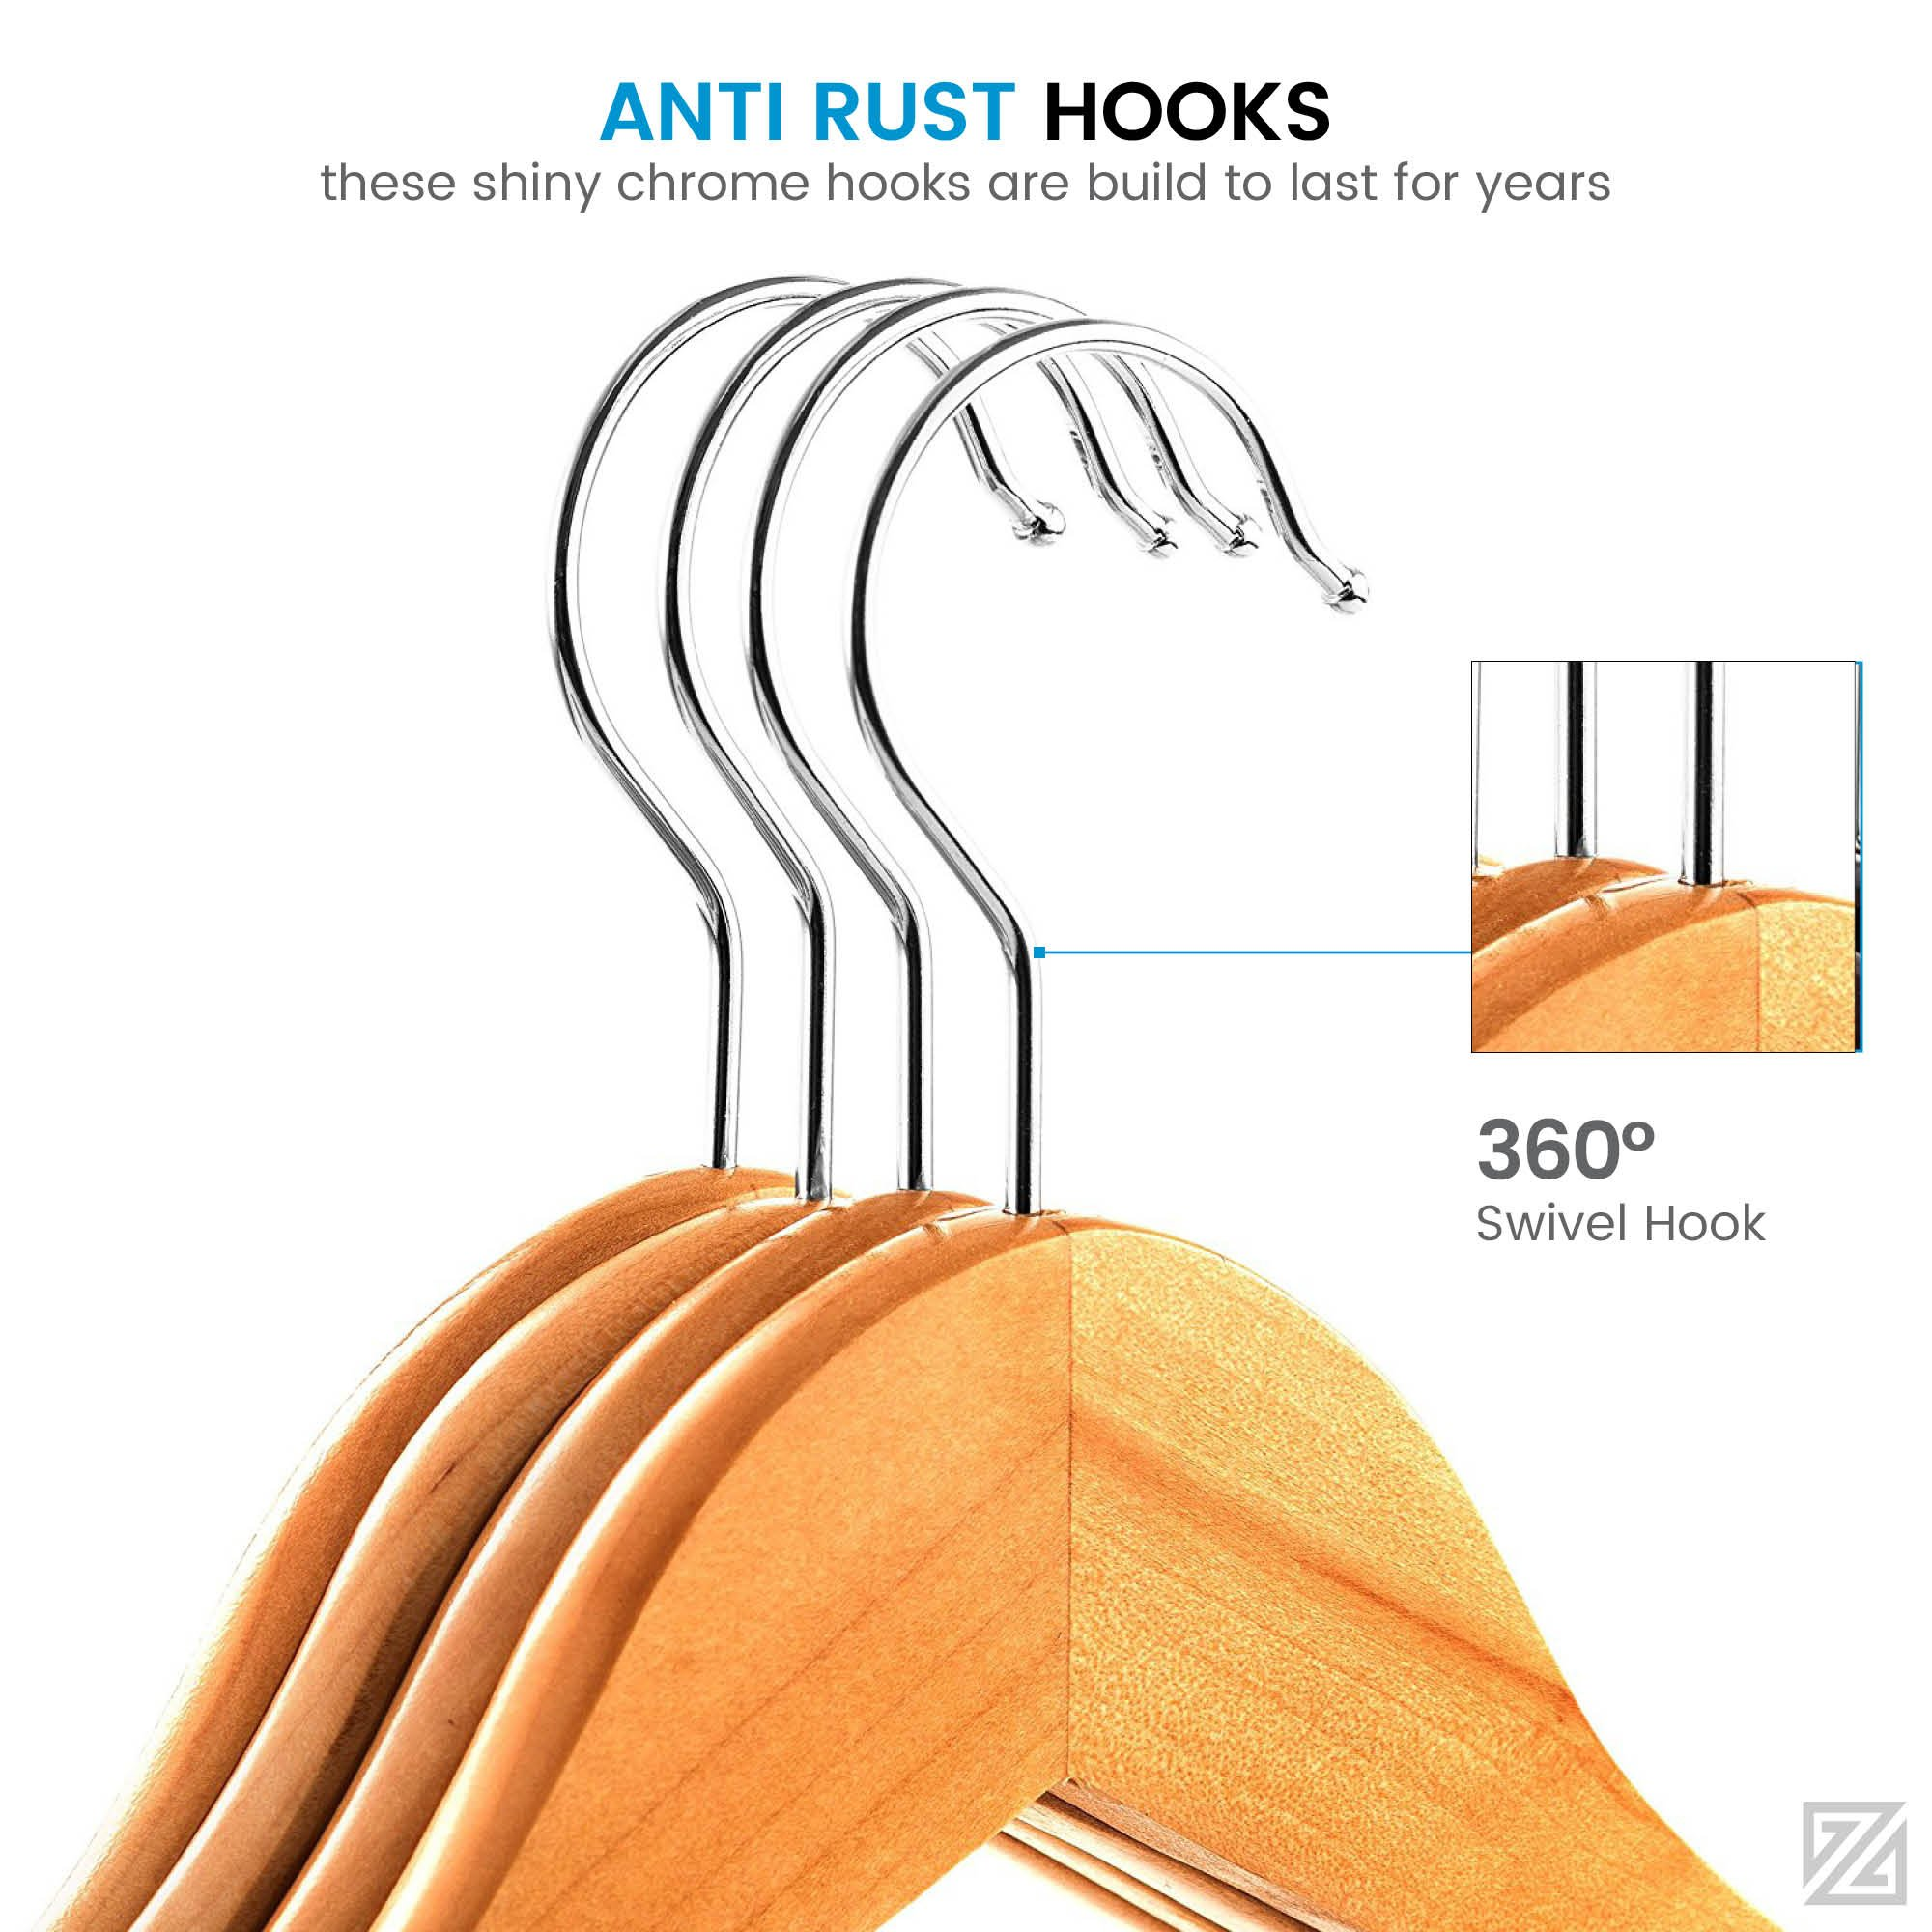 High Grade Lotus Wooden Hangers – 20-pack - Solid Wood Suit Hangers With Extra Smooth Finish, 360 Degree Swivel Hook Non-Slip Bar and Precisely Cut Notches for Coats, Jacket, Pants, and Dress Clothes by ZOBER (Image #3)